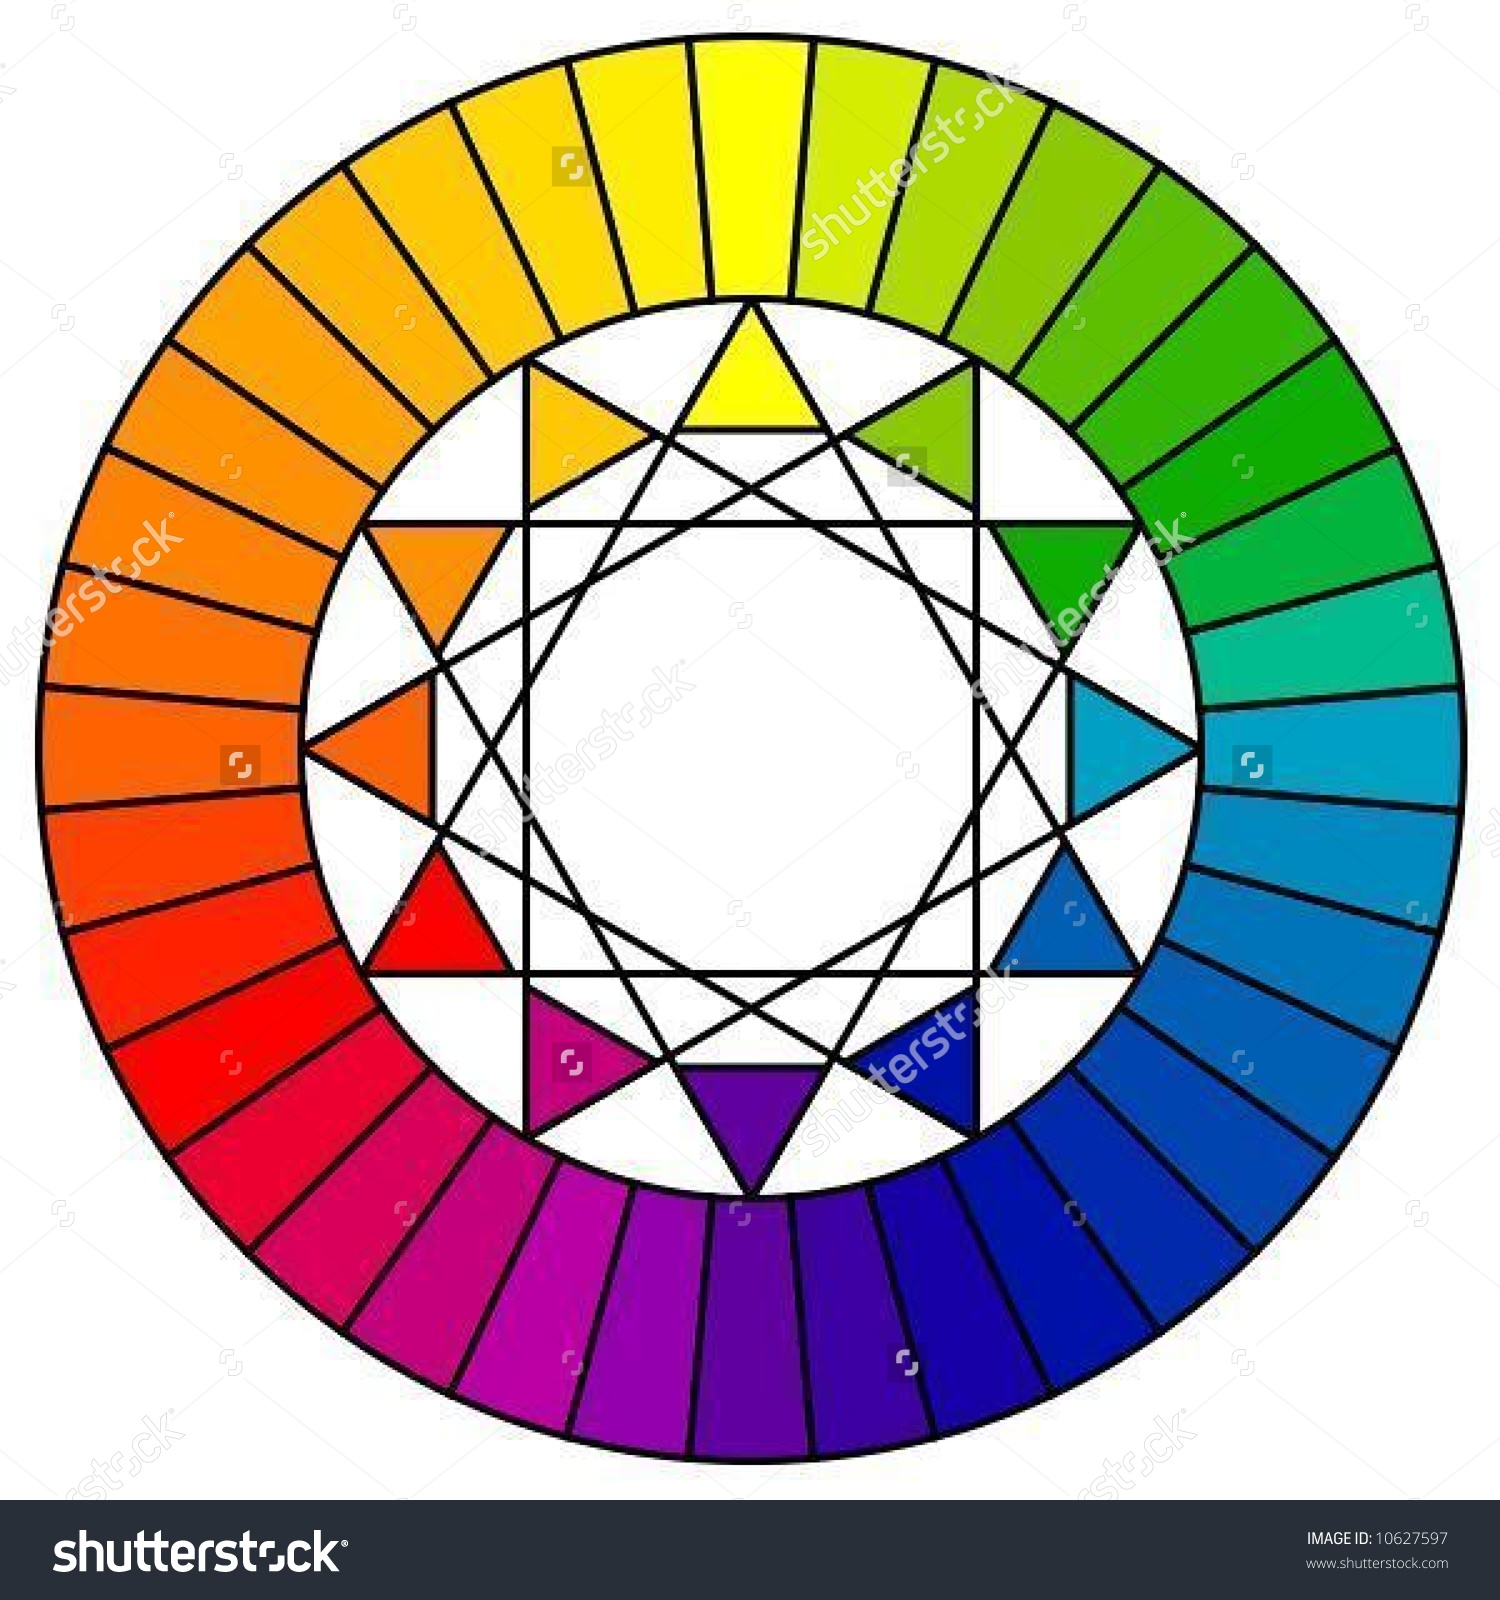 Color Wheel 36 Patterns Vector Stock Vector 10627597.